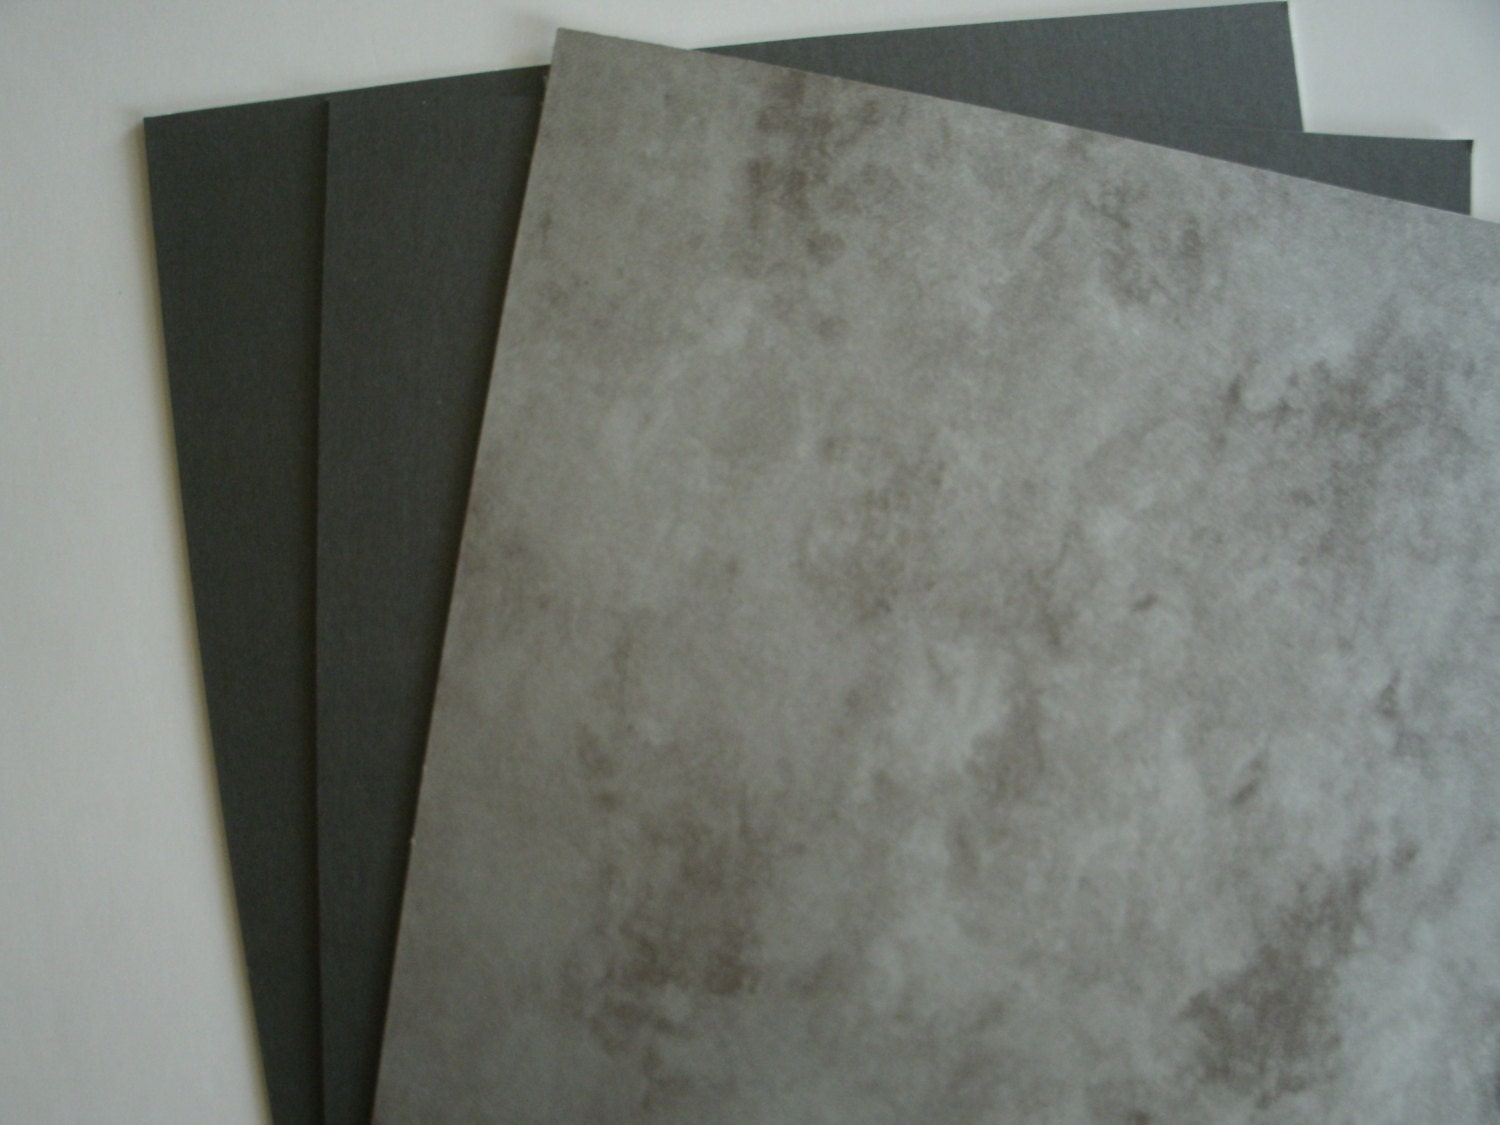 methods product board white application mats info our mat matting features lignin archival conservation specifications free pearl acid ordering ply